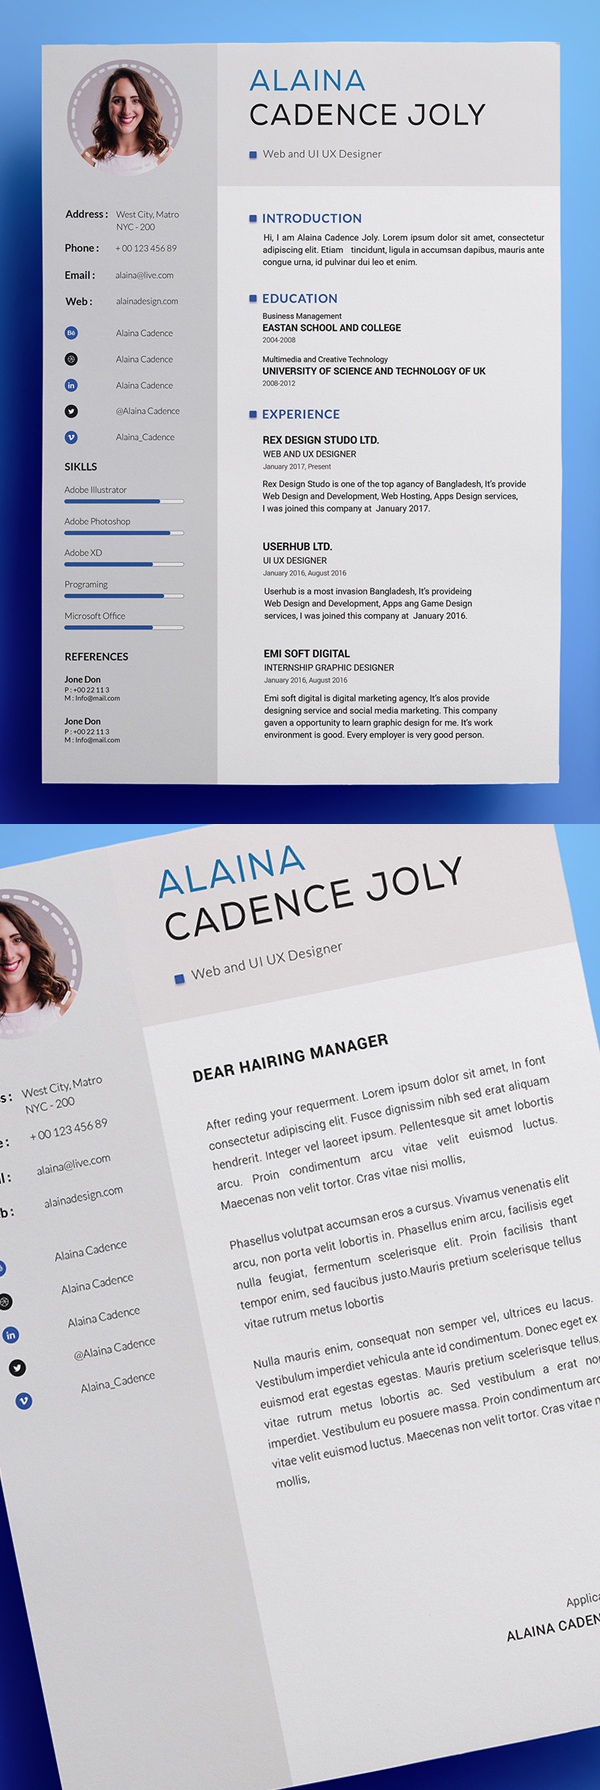 50 Free Resume Templates: Best Of 2018 -  5